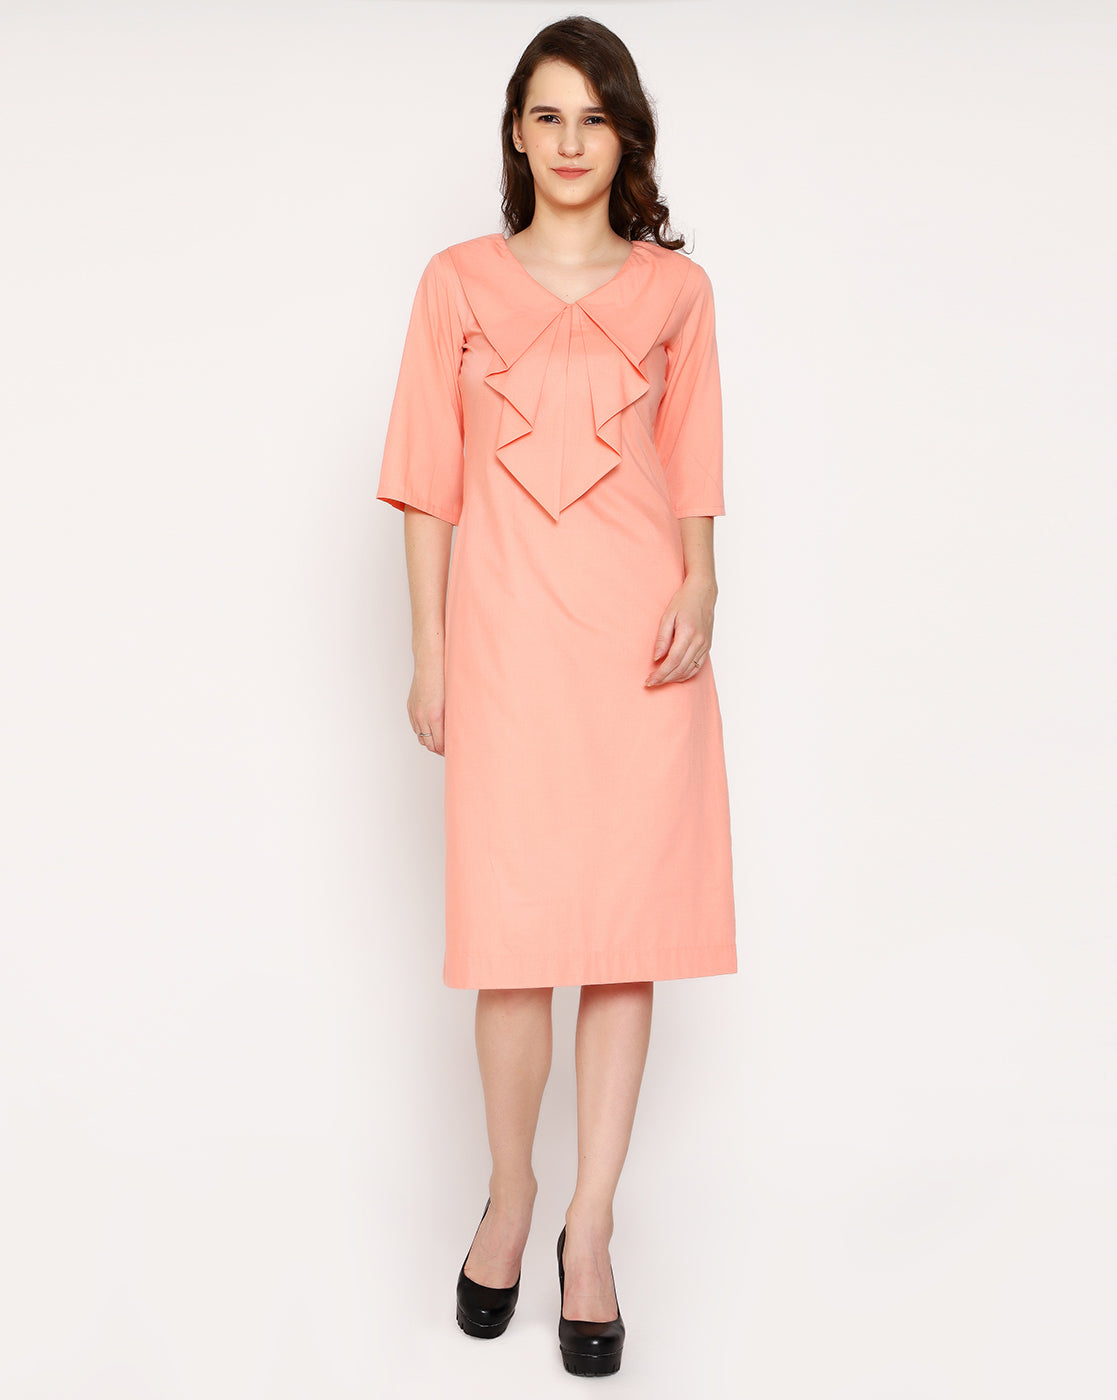 Posh waterfall Collar Dress - Flamingo Peach